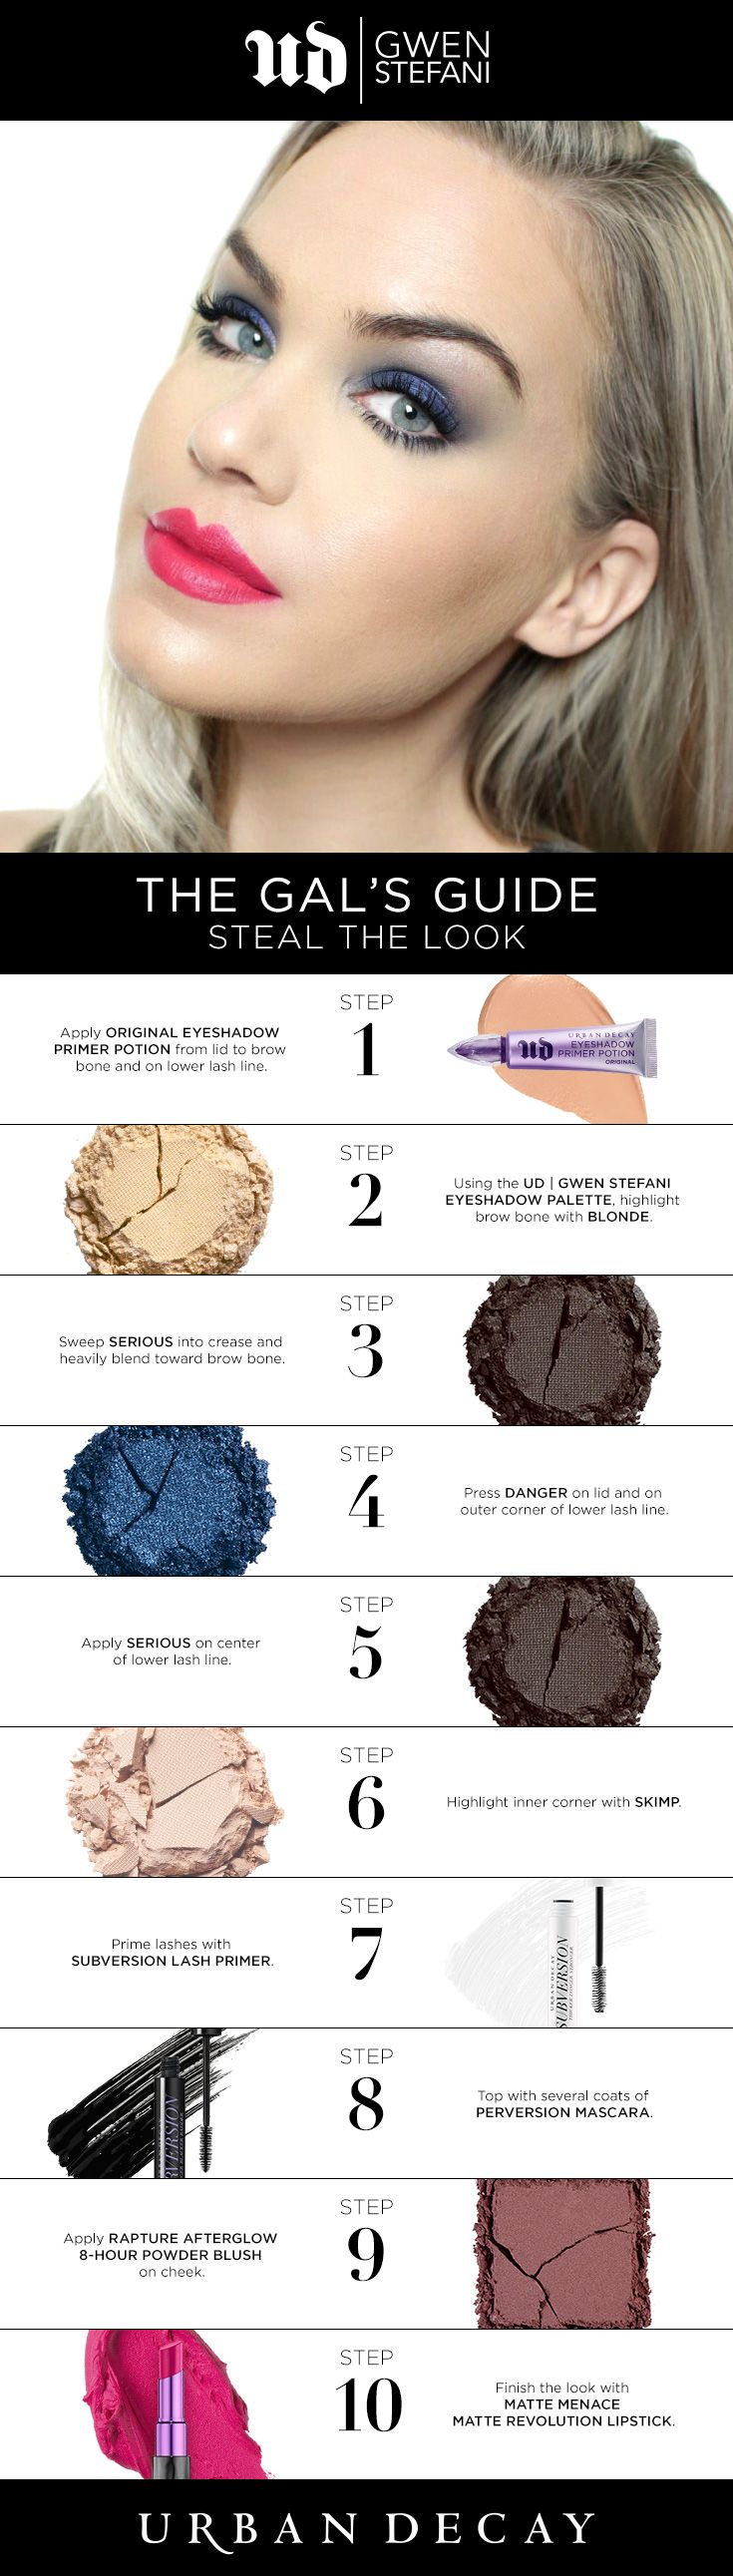 Fan of The Gals Guide? Steal her UD look with the 10 easy steps below. #UrbanDecay